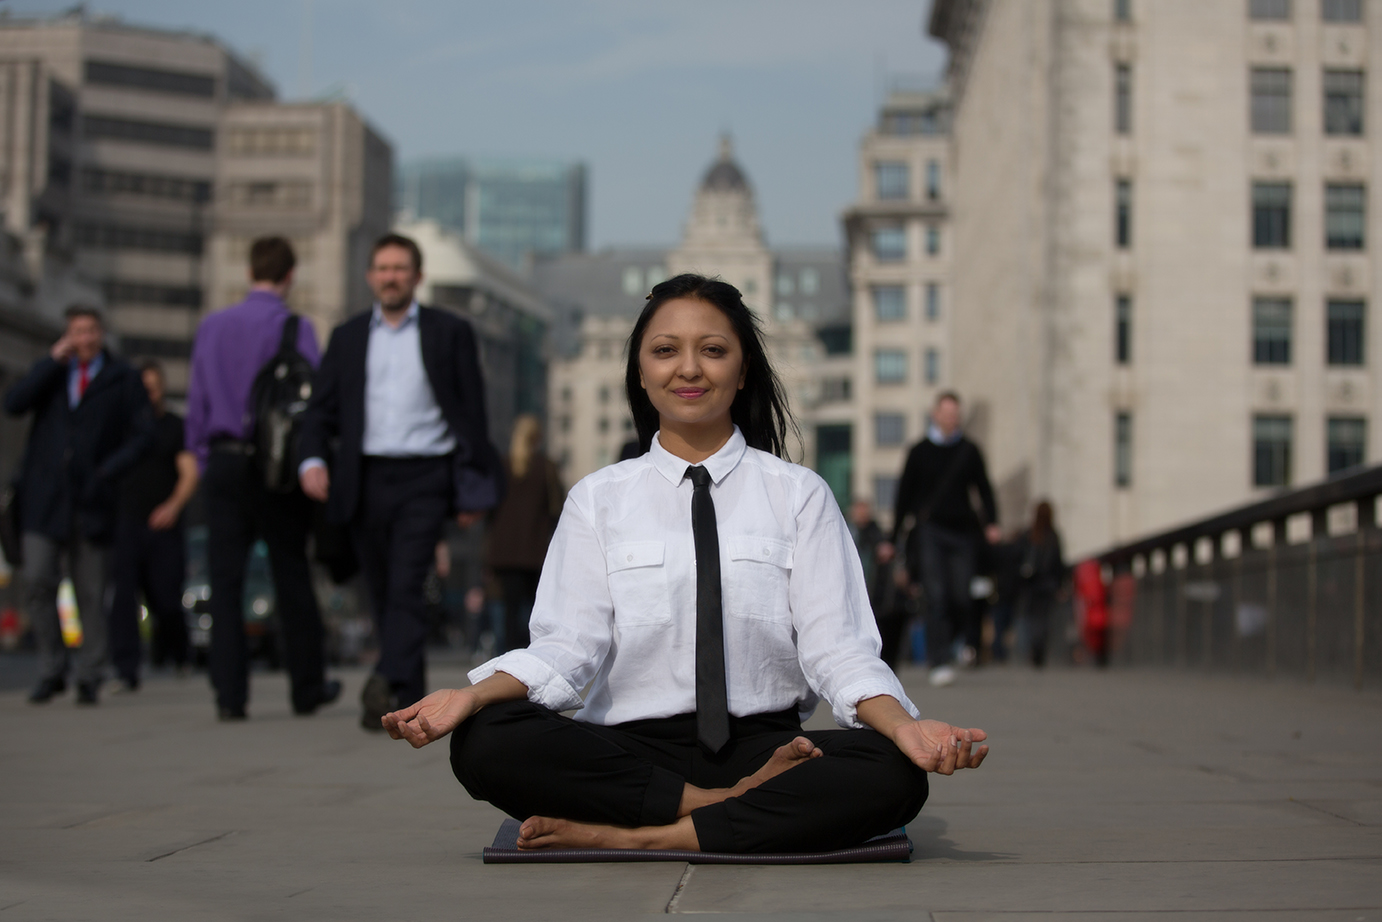 Calm amongst the craziness: Meditation pose